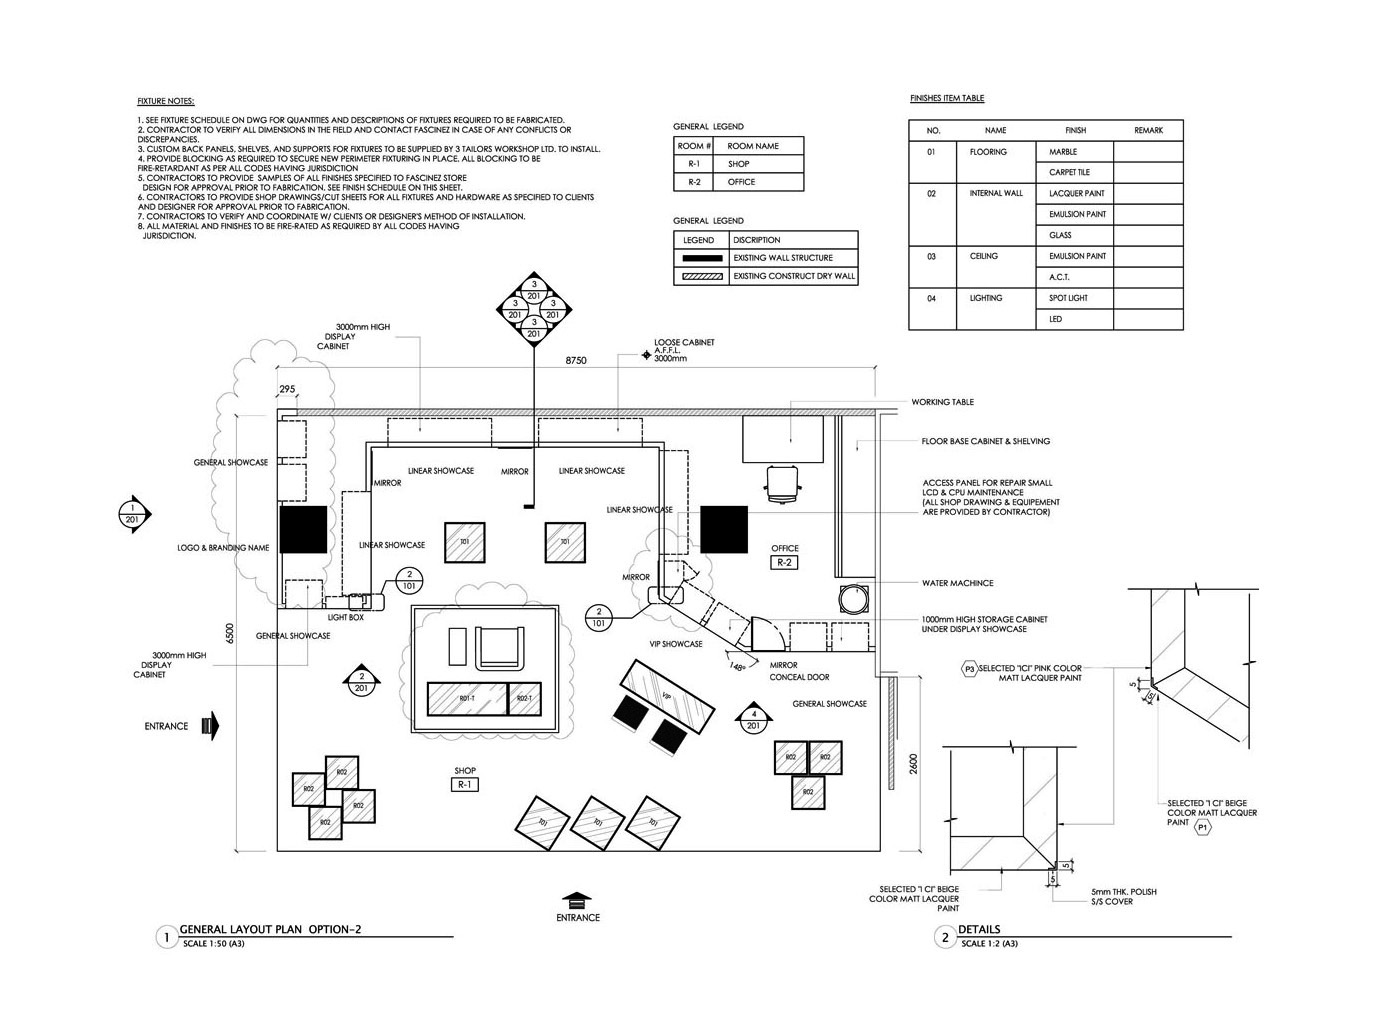 Yrenec interior design construction drawings and millwork for Interior design layout drawing